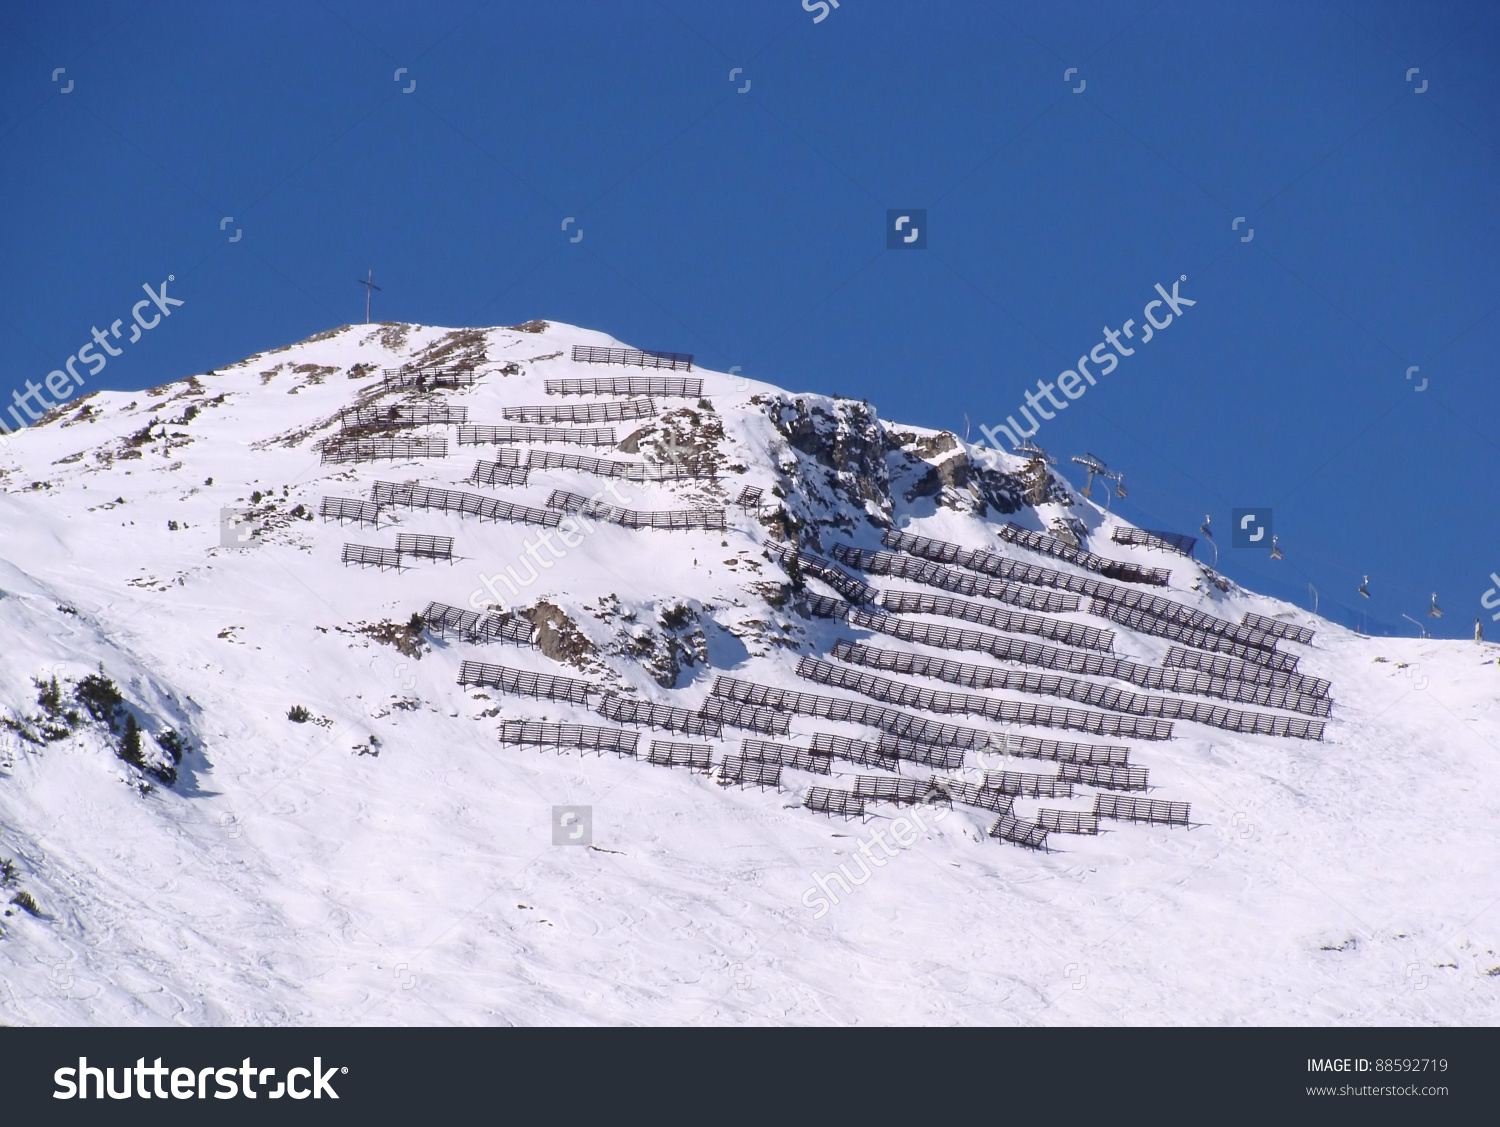 Avalanche Protection Austrian Alps Ski Resort Stock Photo 88592719.